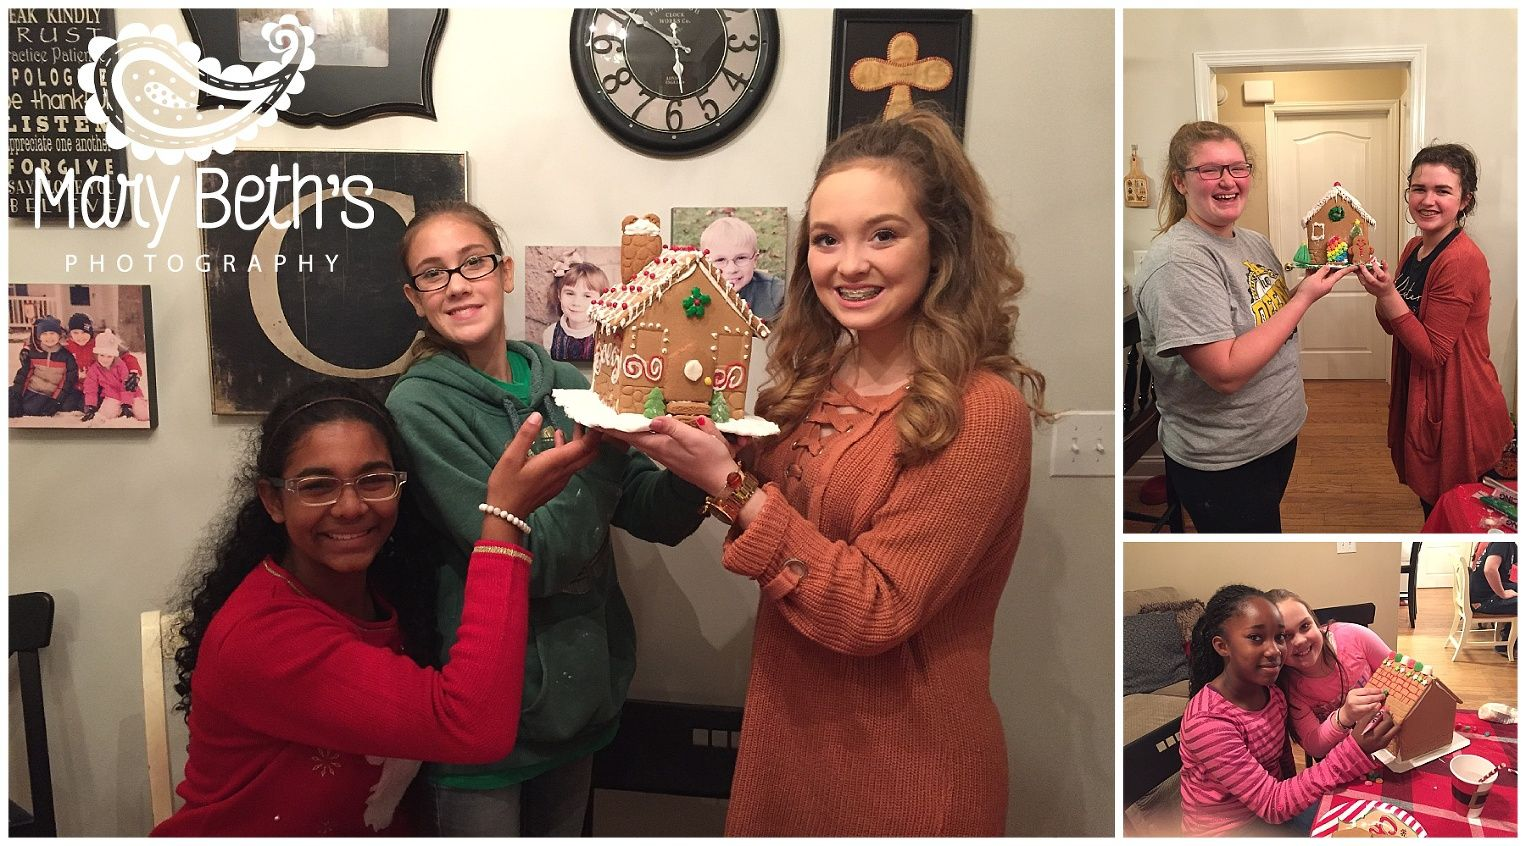 Augusta GA Newborn Photographer | Gingerbread House Traditions | Mary Beth's Photography  #marybethsphotography #gingerbreadhouses #holidaytraditions #kidactivity #funtimes #Ilovemyjob #portraits #augustaganewbornphotographer #fridaysfavoritethings #bestclientsever